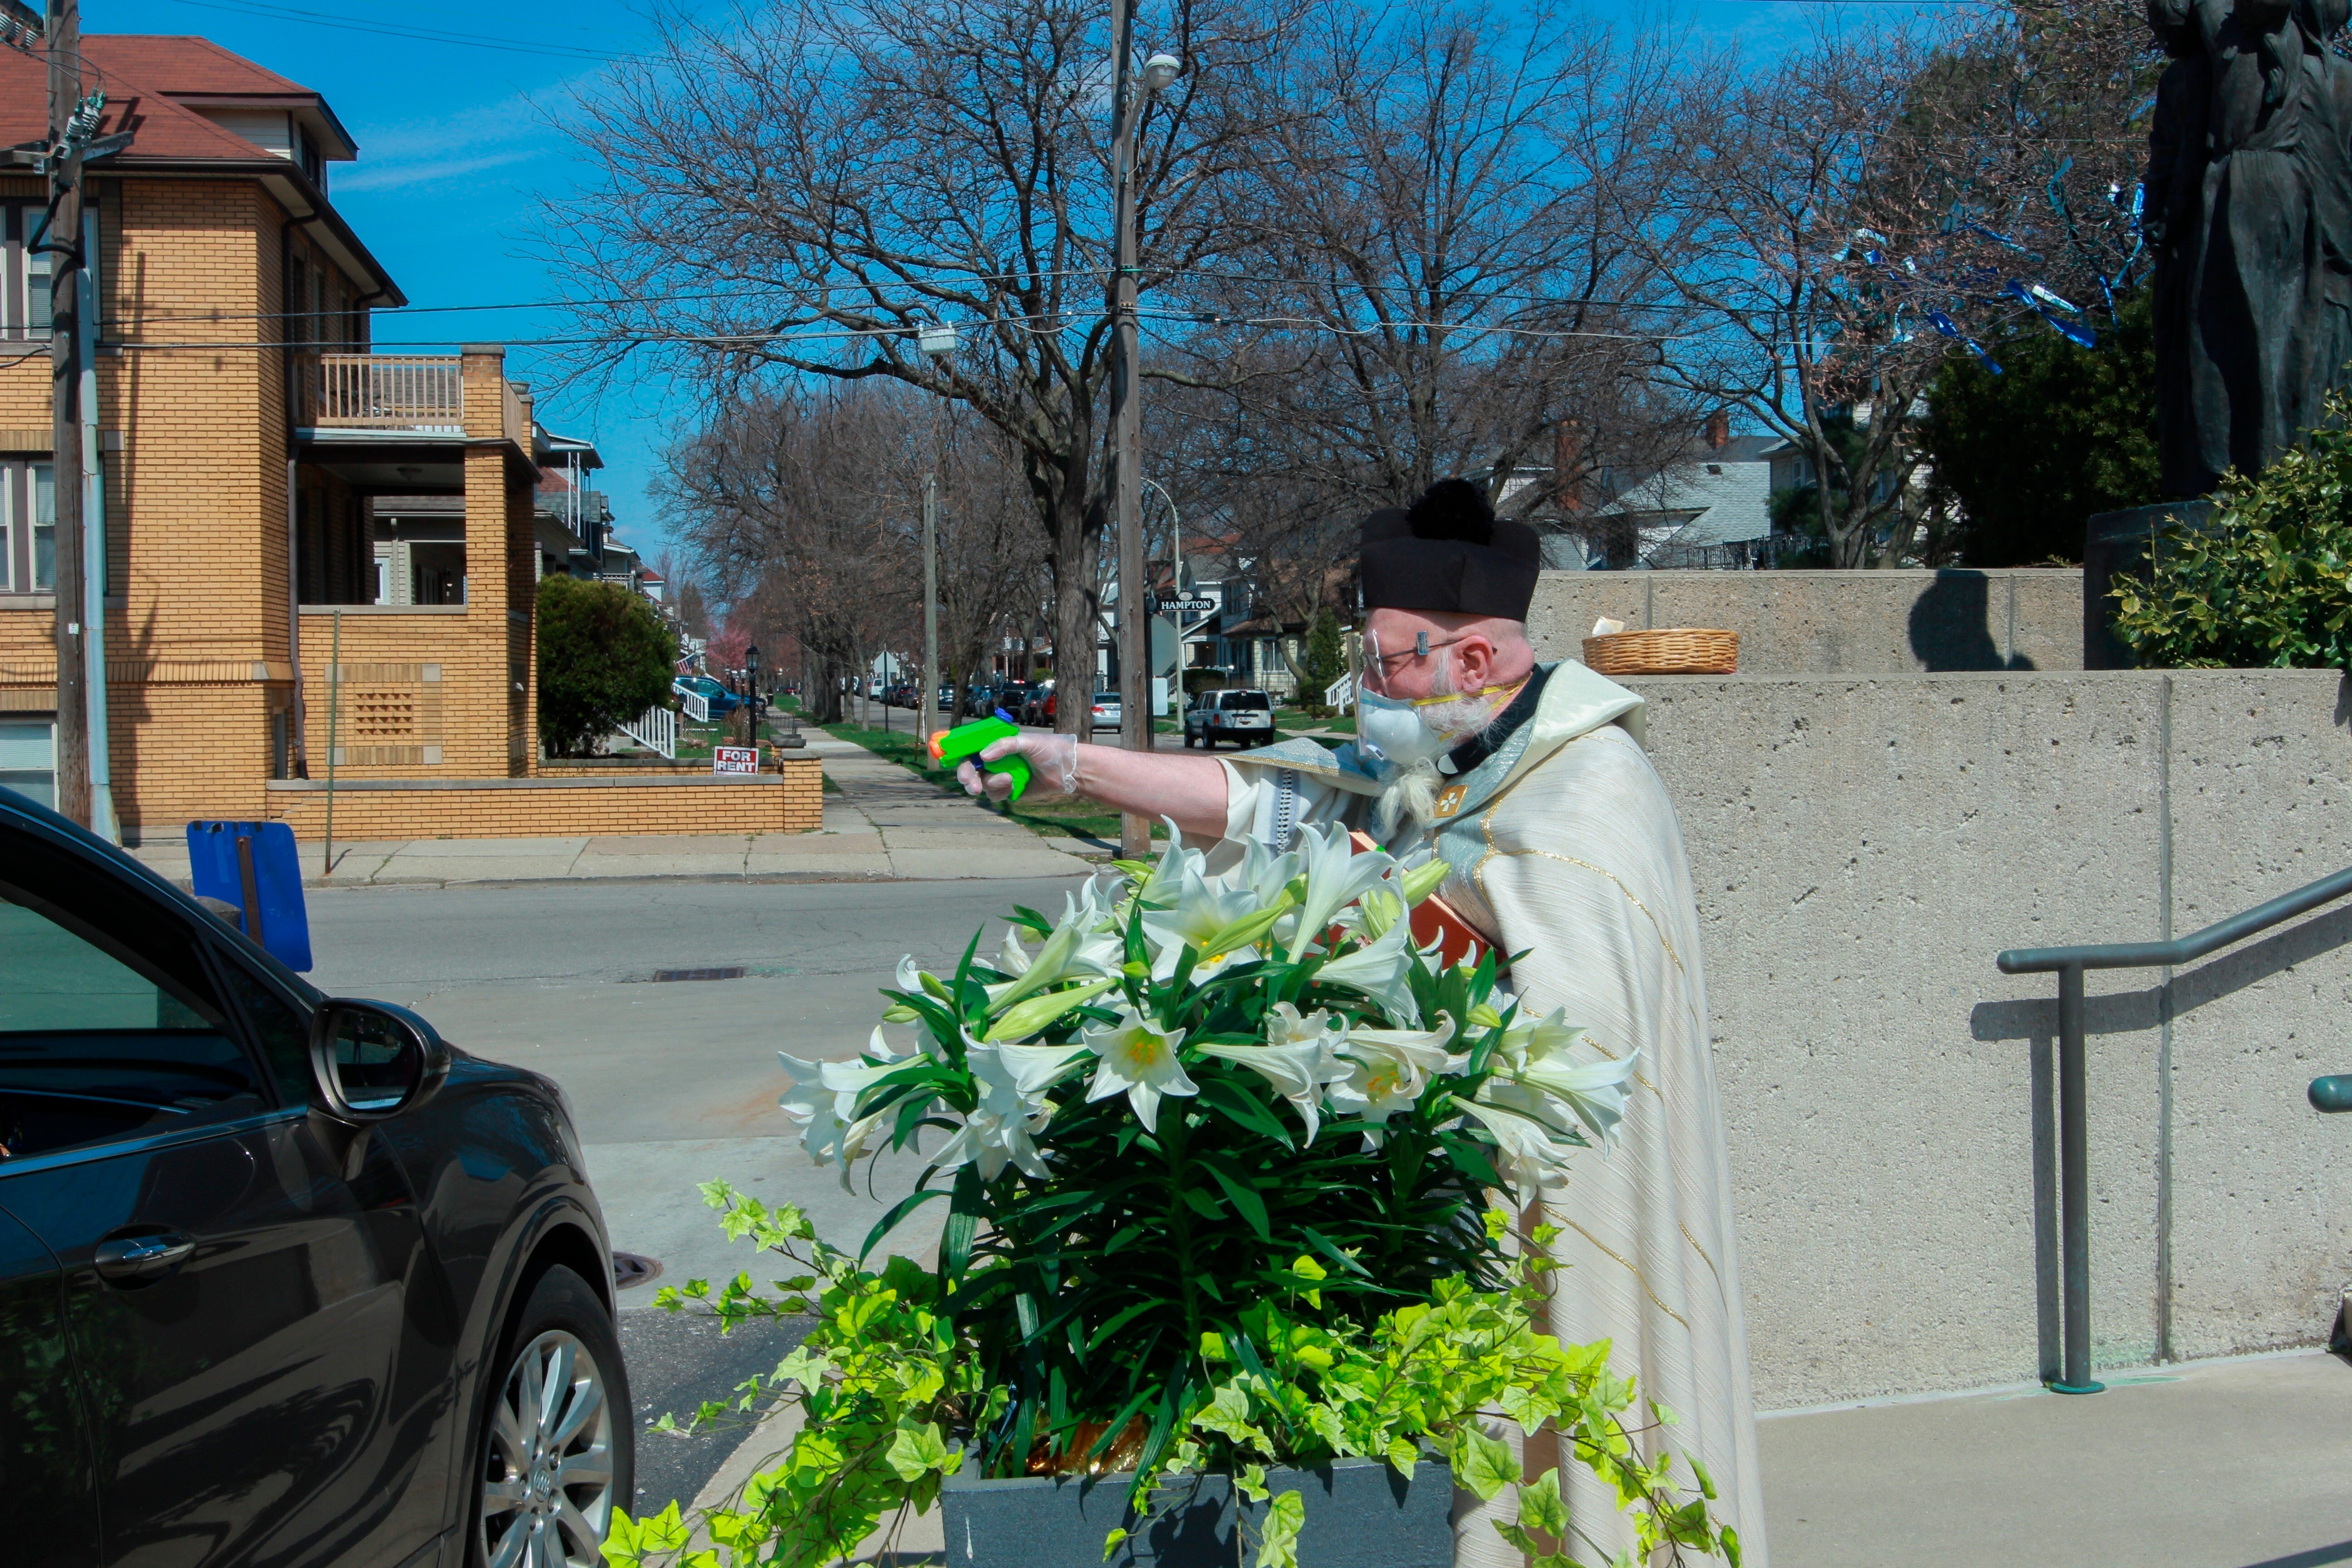 Detroit Priest Uses Squirt Gun Full Of Holy Water In Viral Photos